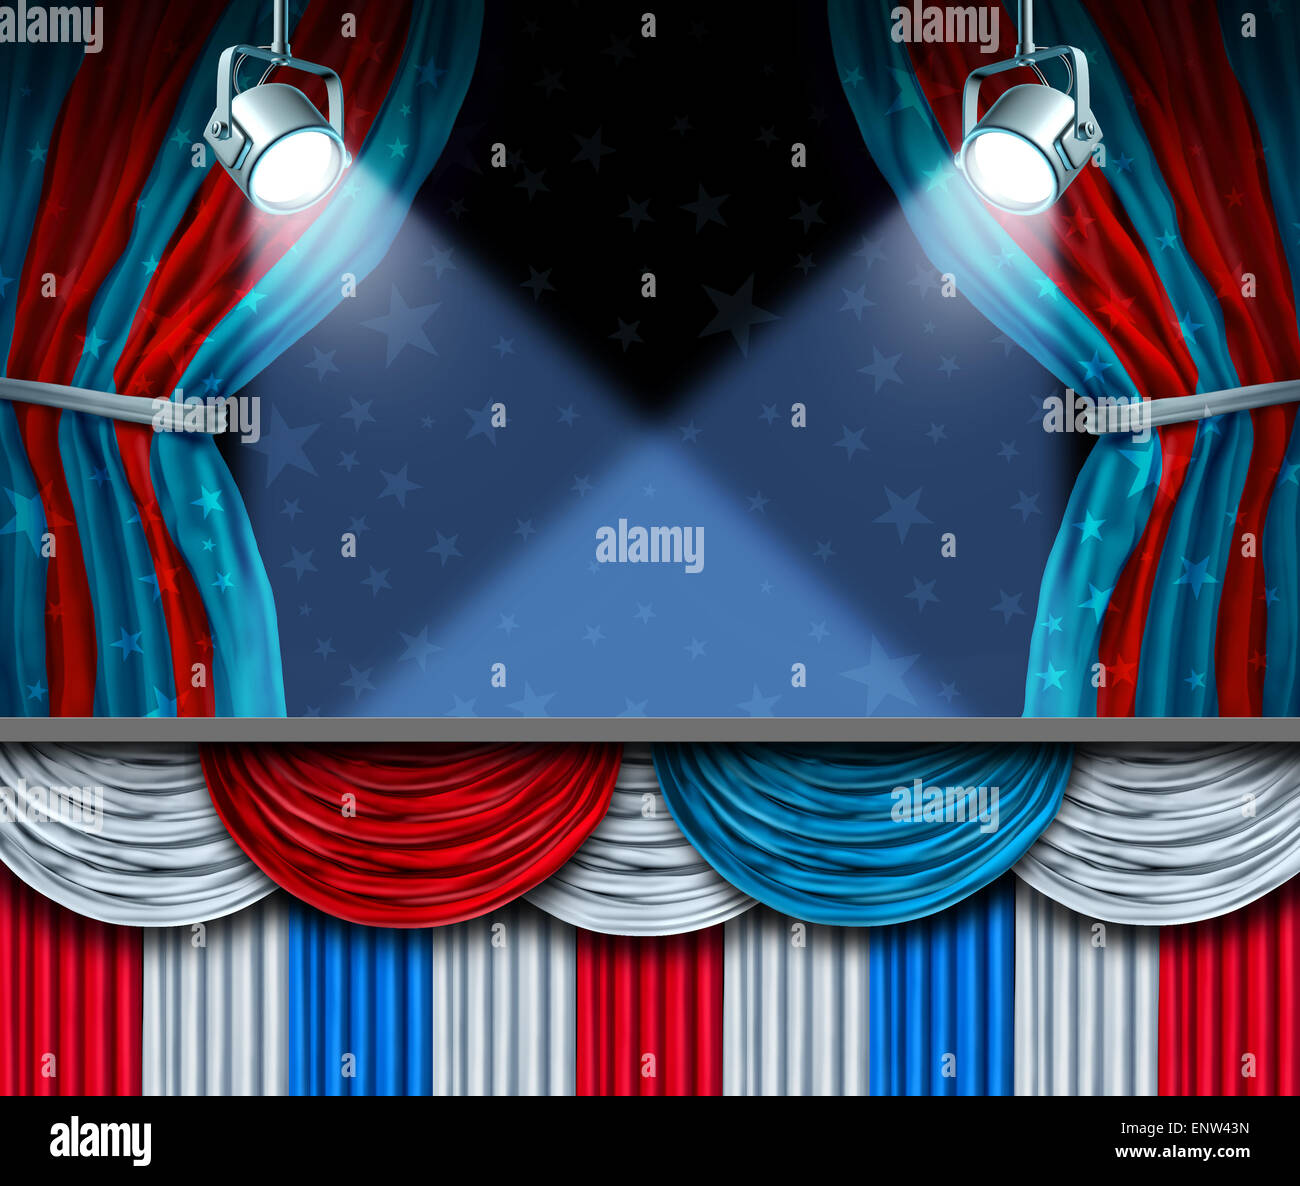 Election background or fourth of July design element with stage spot lights and curtains with blank space as a concept - Stock Image